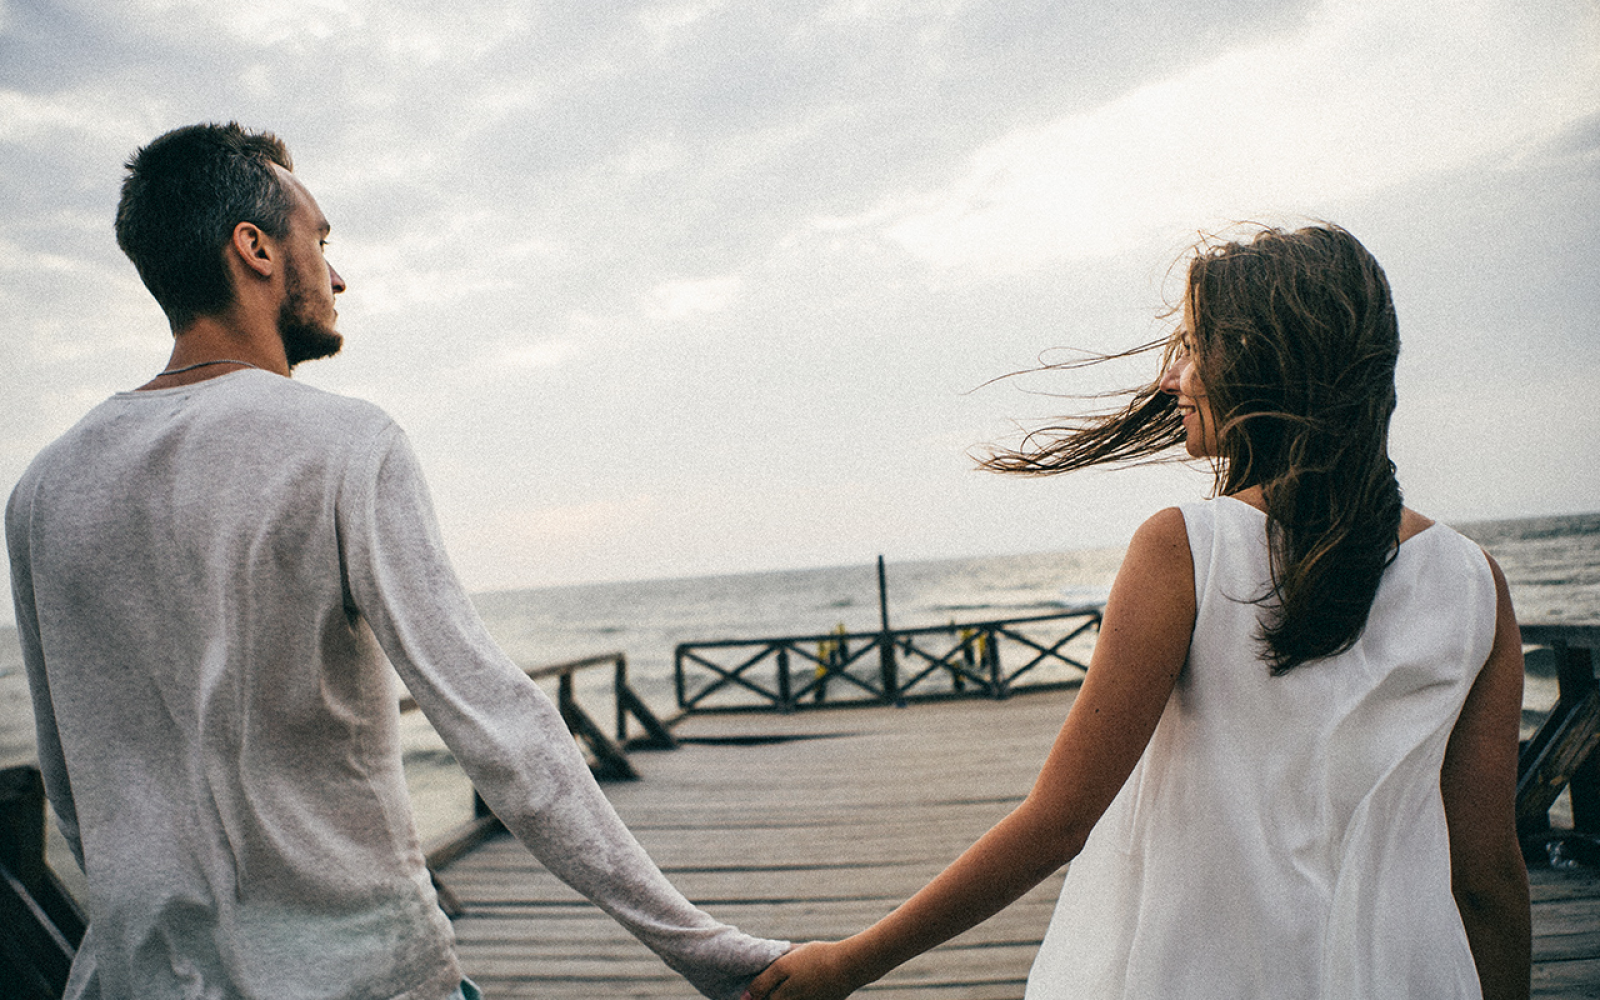 17 Things Every Woman Should Know About Men